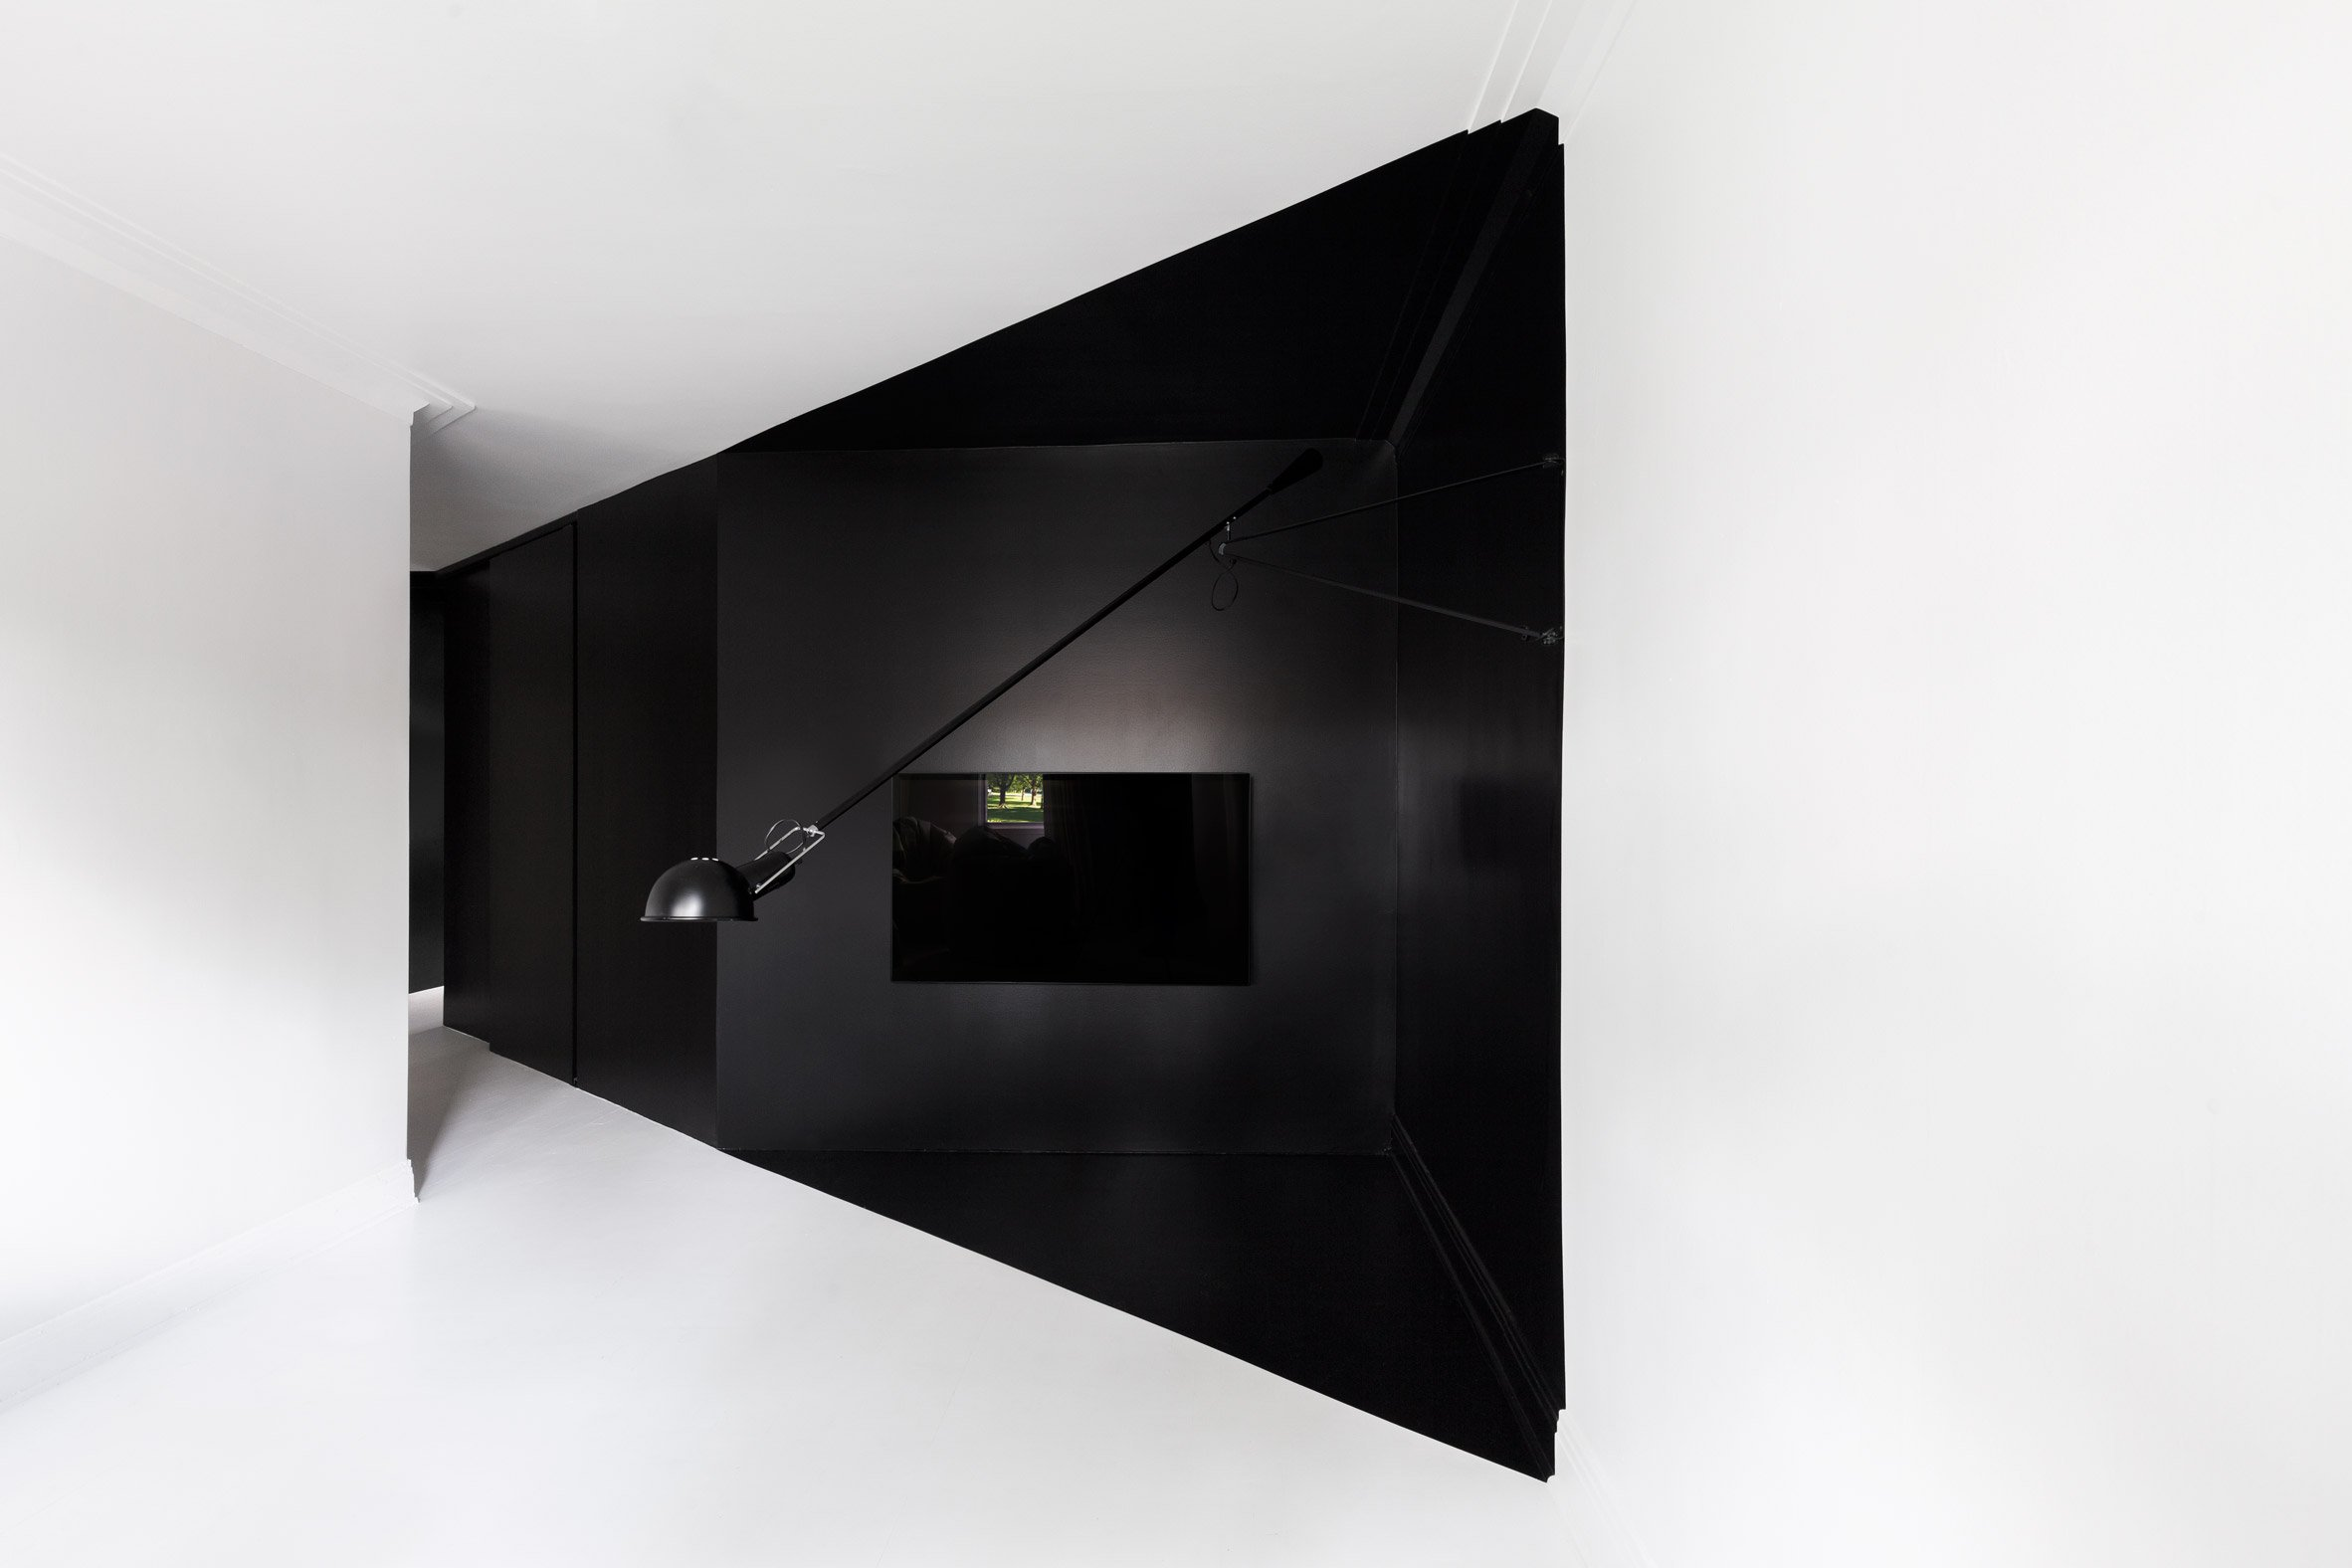 Jean Verville tricks the eye with black and white Montreal apartment